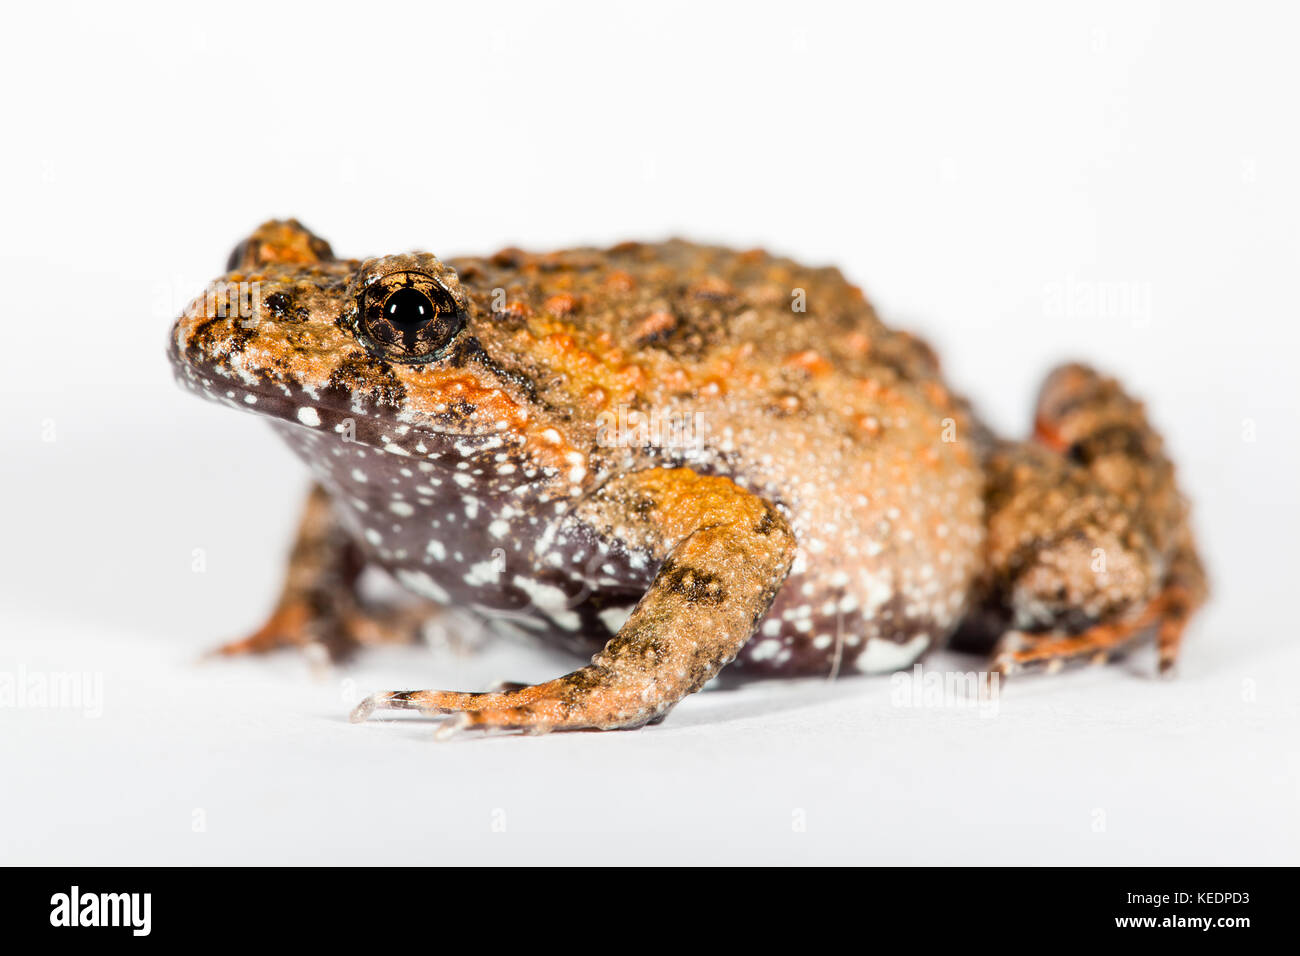 Tusked Frog (Adelotus brevis). Adult female in studio (captive). Hopkins Creek. New South Wales. Australia. - Stock Image